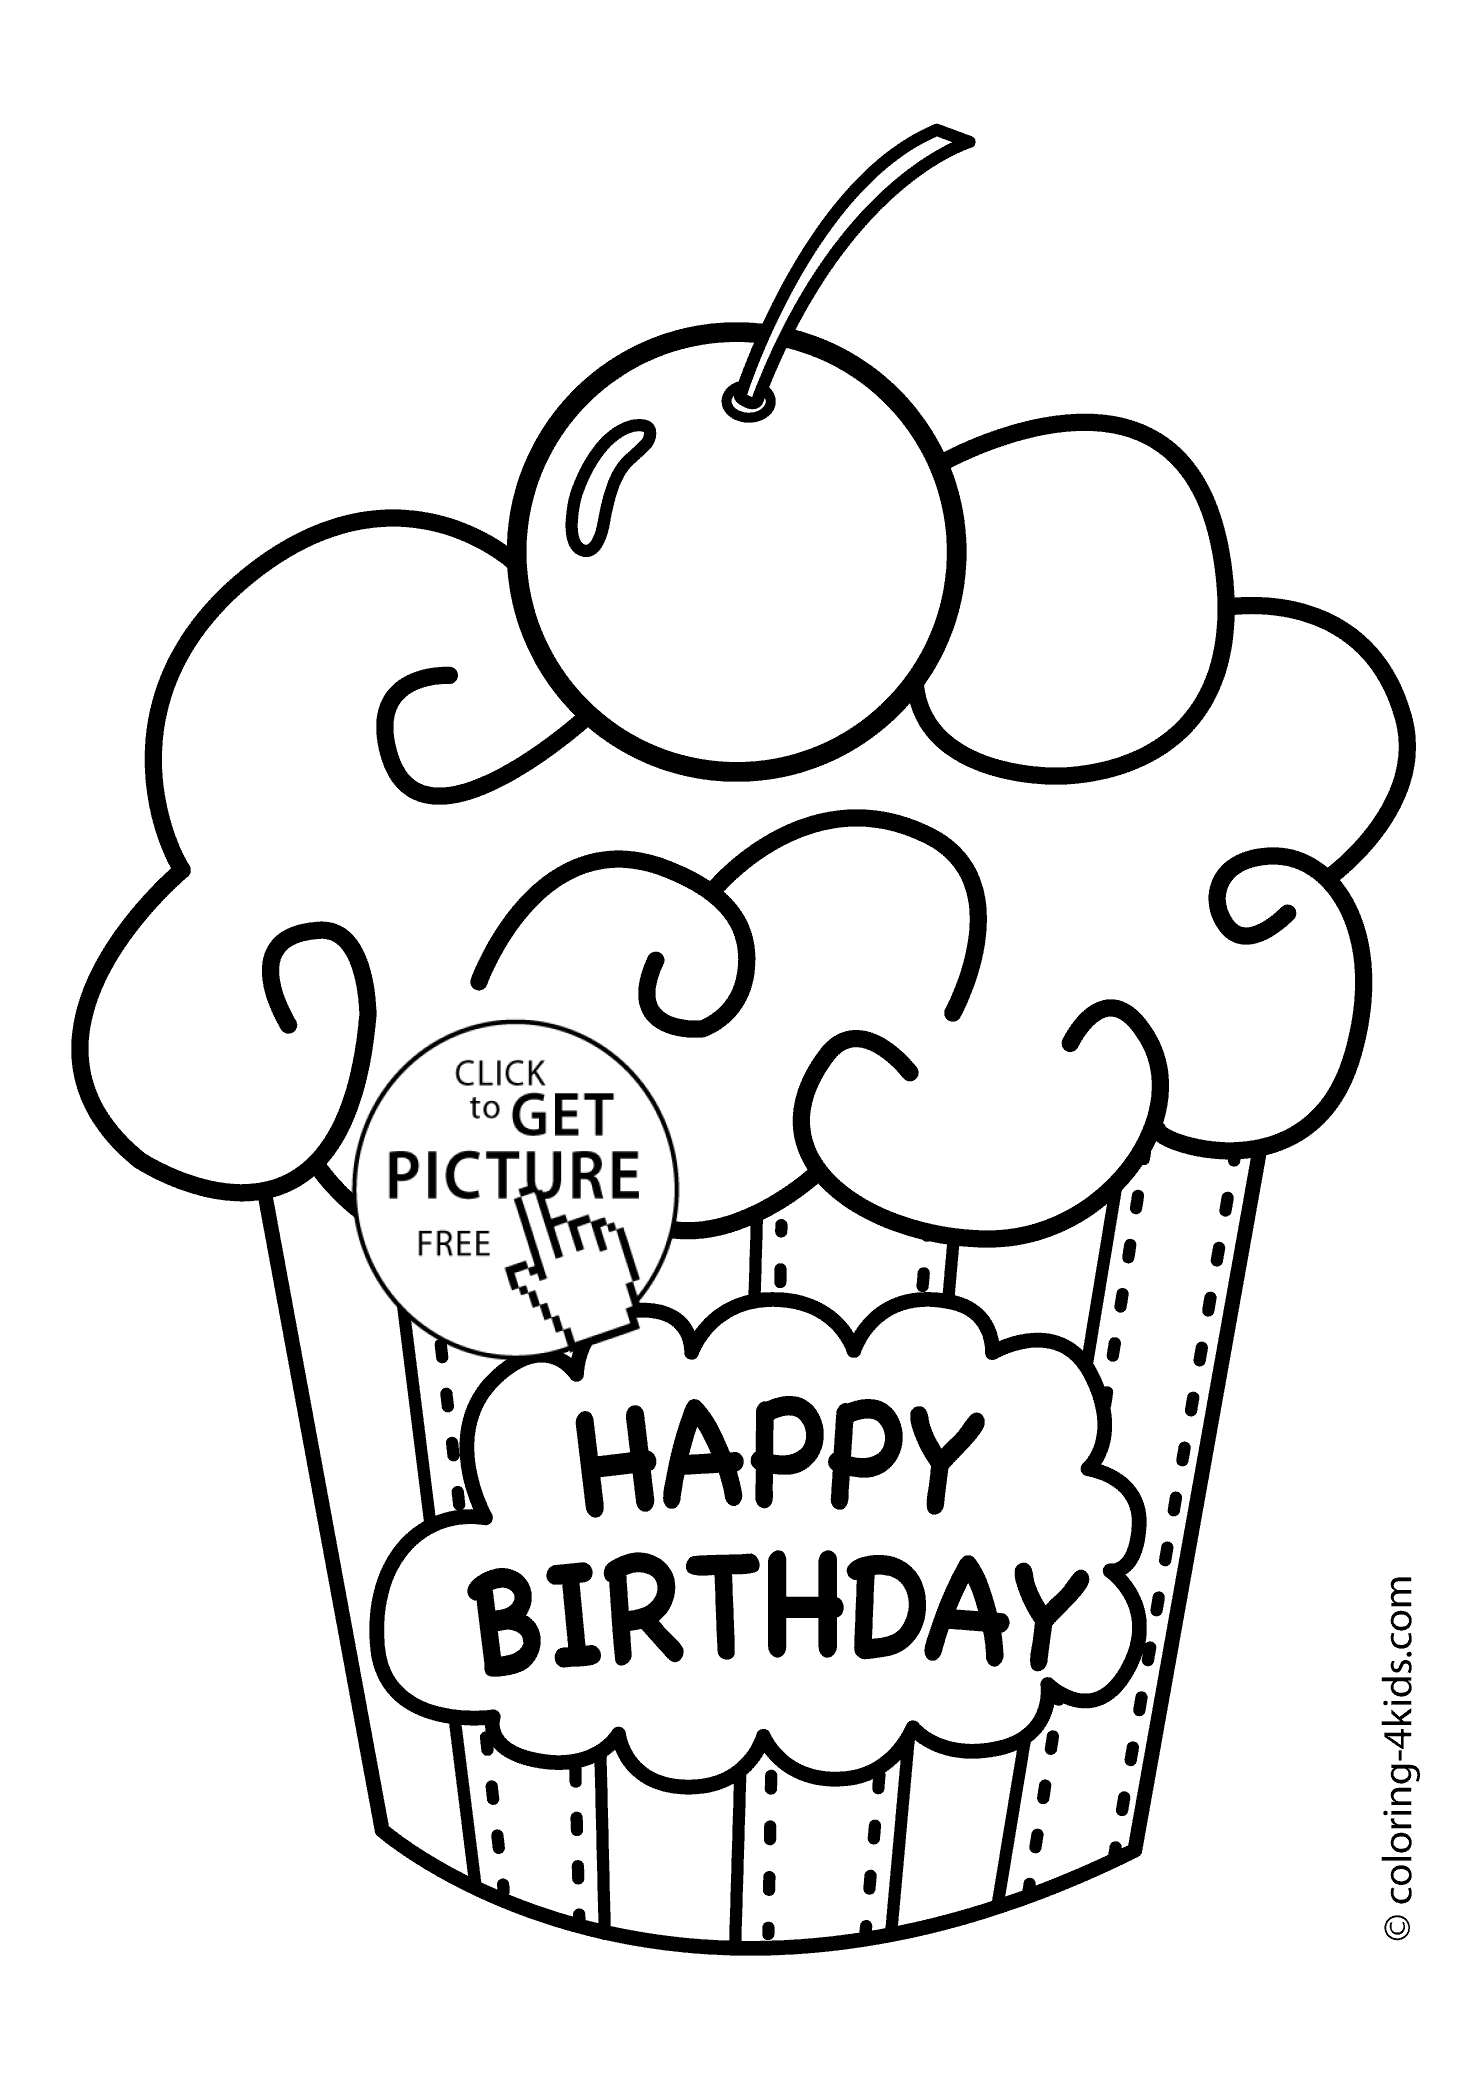 printable coloring pages that say happy birthday ; happy%2520birthday%2520sign%2520coloring%2520pages%2520;%2520birthday-printable-coloring-pages-cake-happy-birthday-party-coloring-pages-muffin-coloring-pages-for-kids